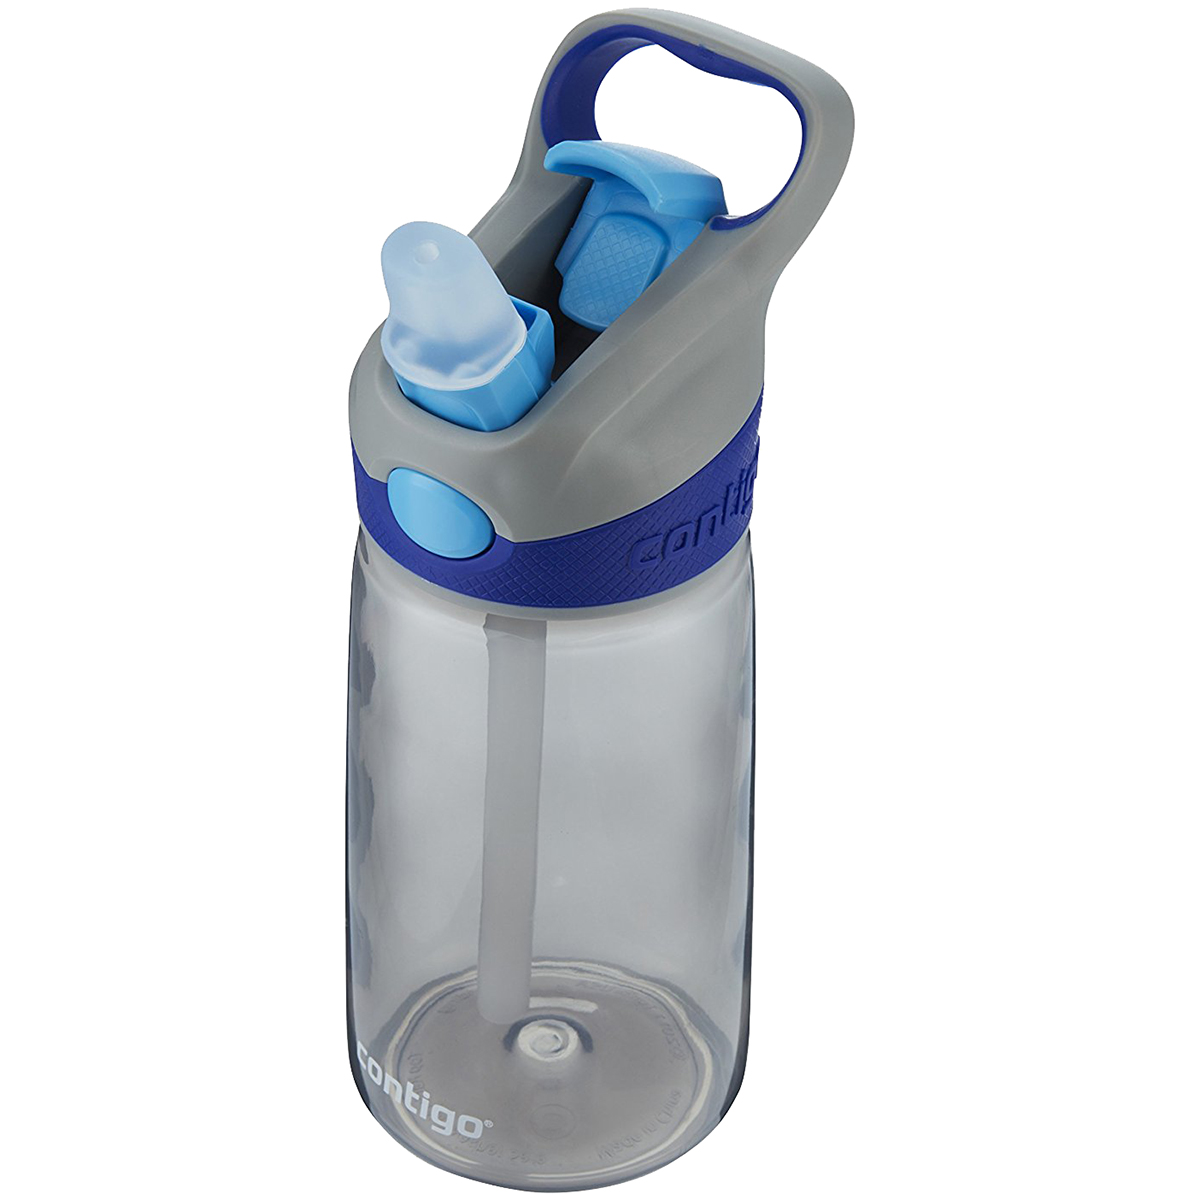 Contigo-14-oz-Kid-039-s-Striker-Autospout-Water-Bottle Indexbild 45